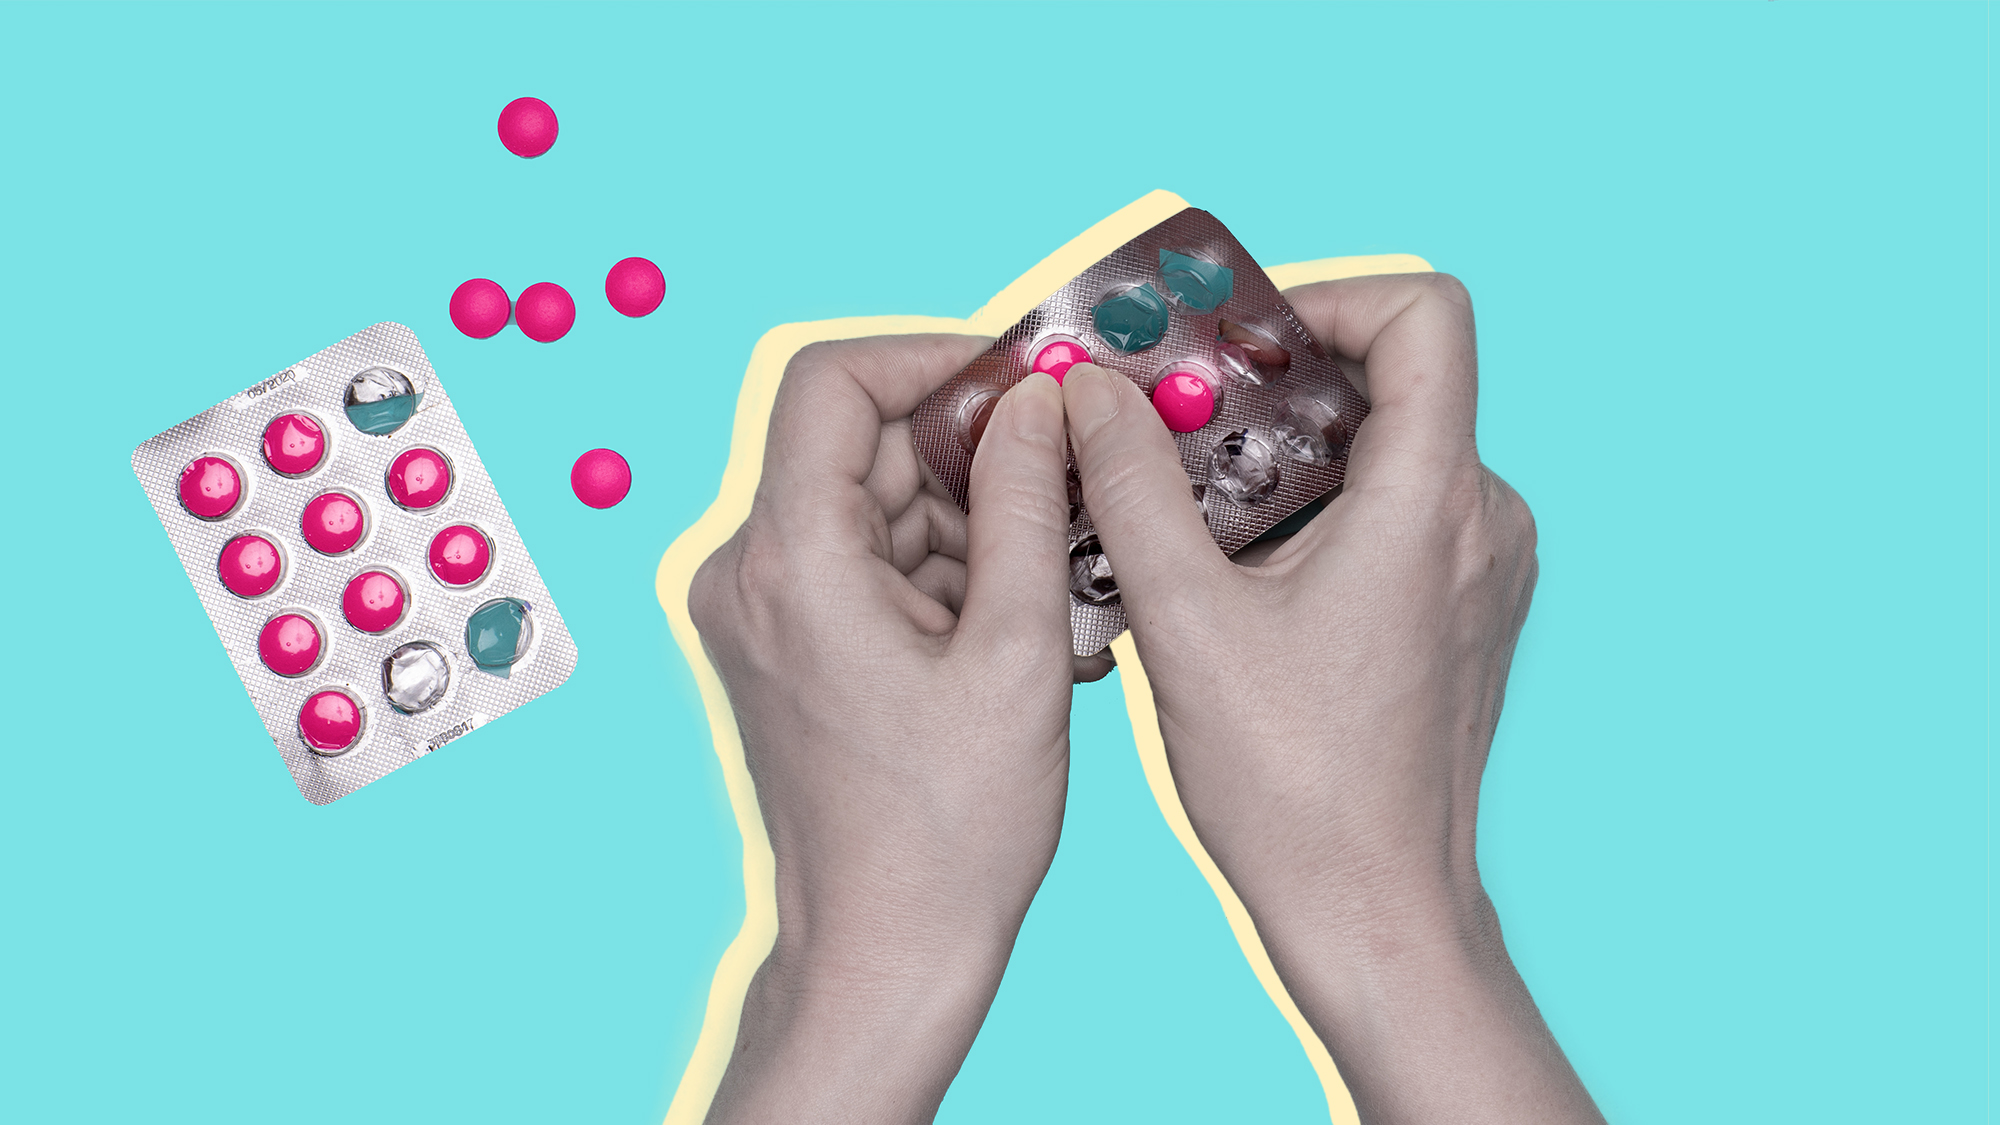 benadryl-tiktok-challenge , Close up of female hands holding blister pack with pink pills over pastel blue background. Sick patient taking medication.